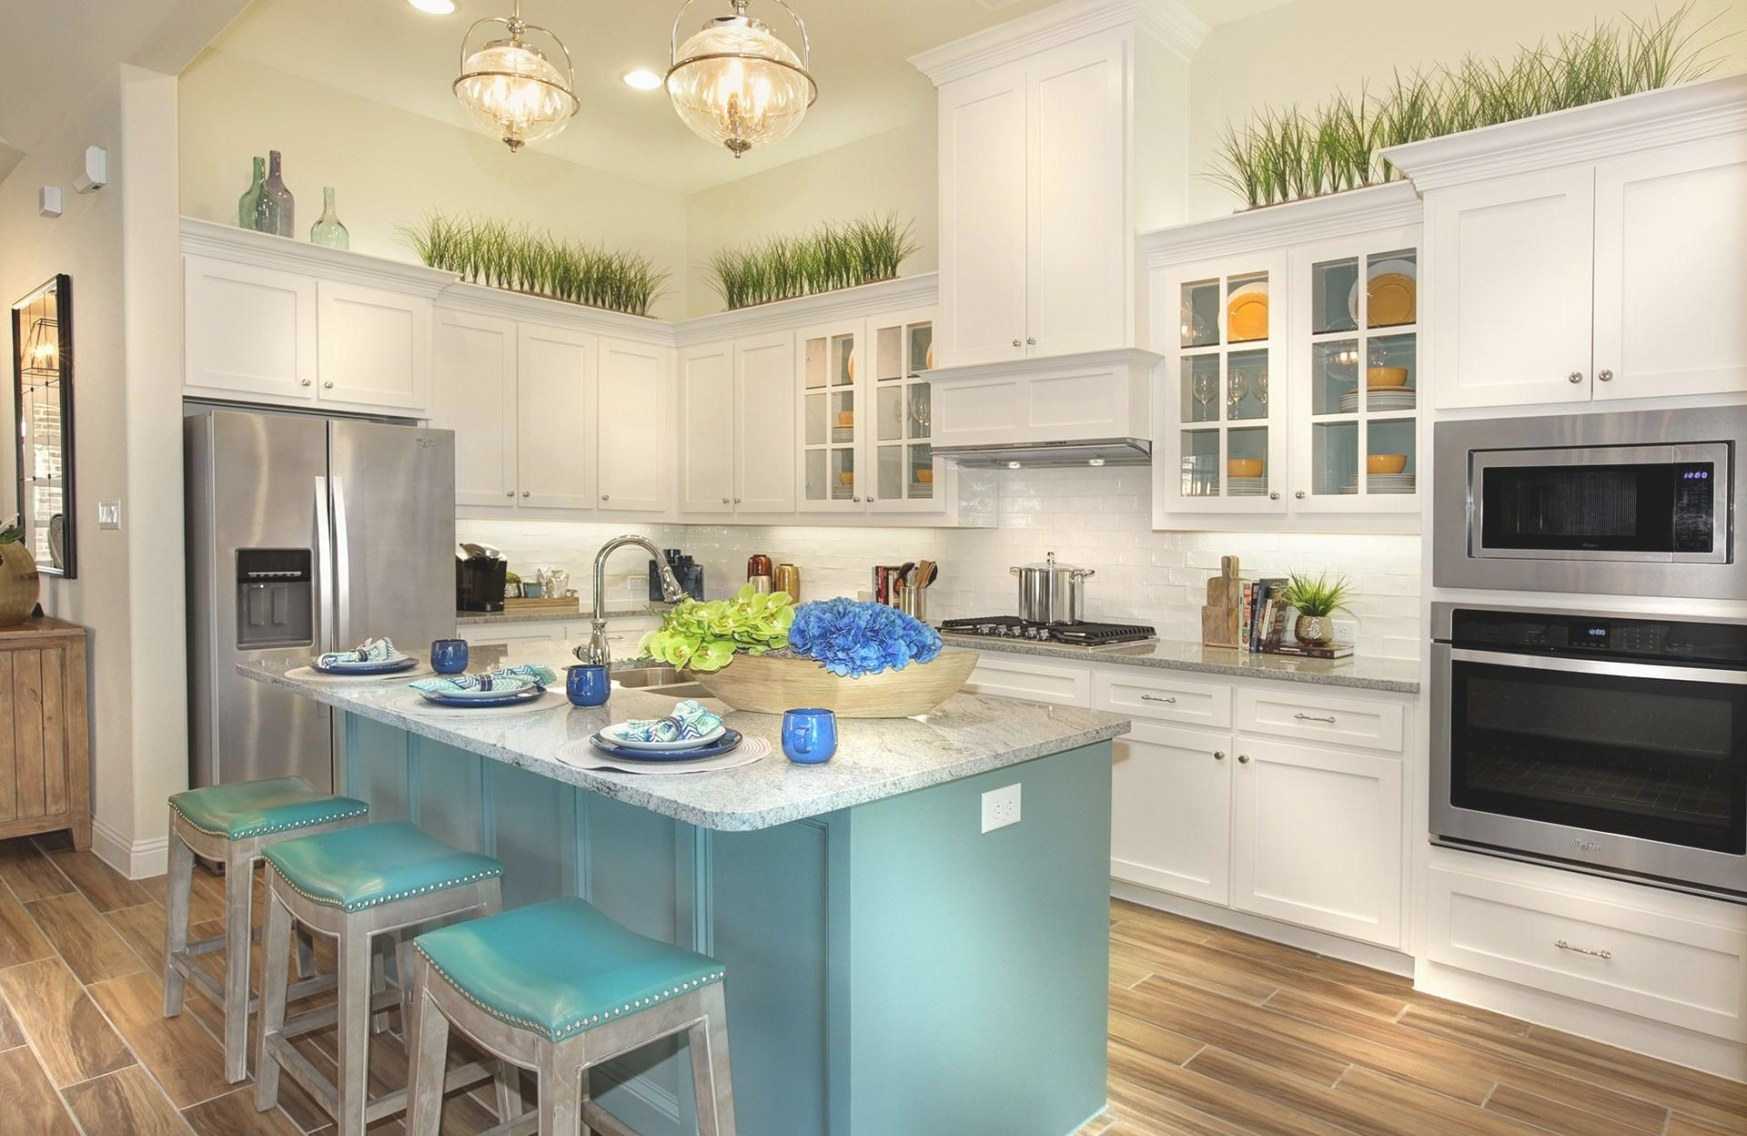 White Kitchen With Teal Accents | White Modern Kitchen regarding Teal And White Kitchen